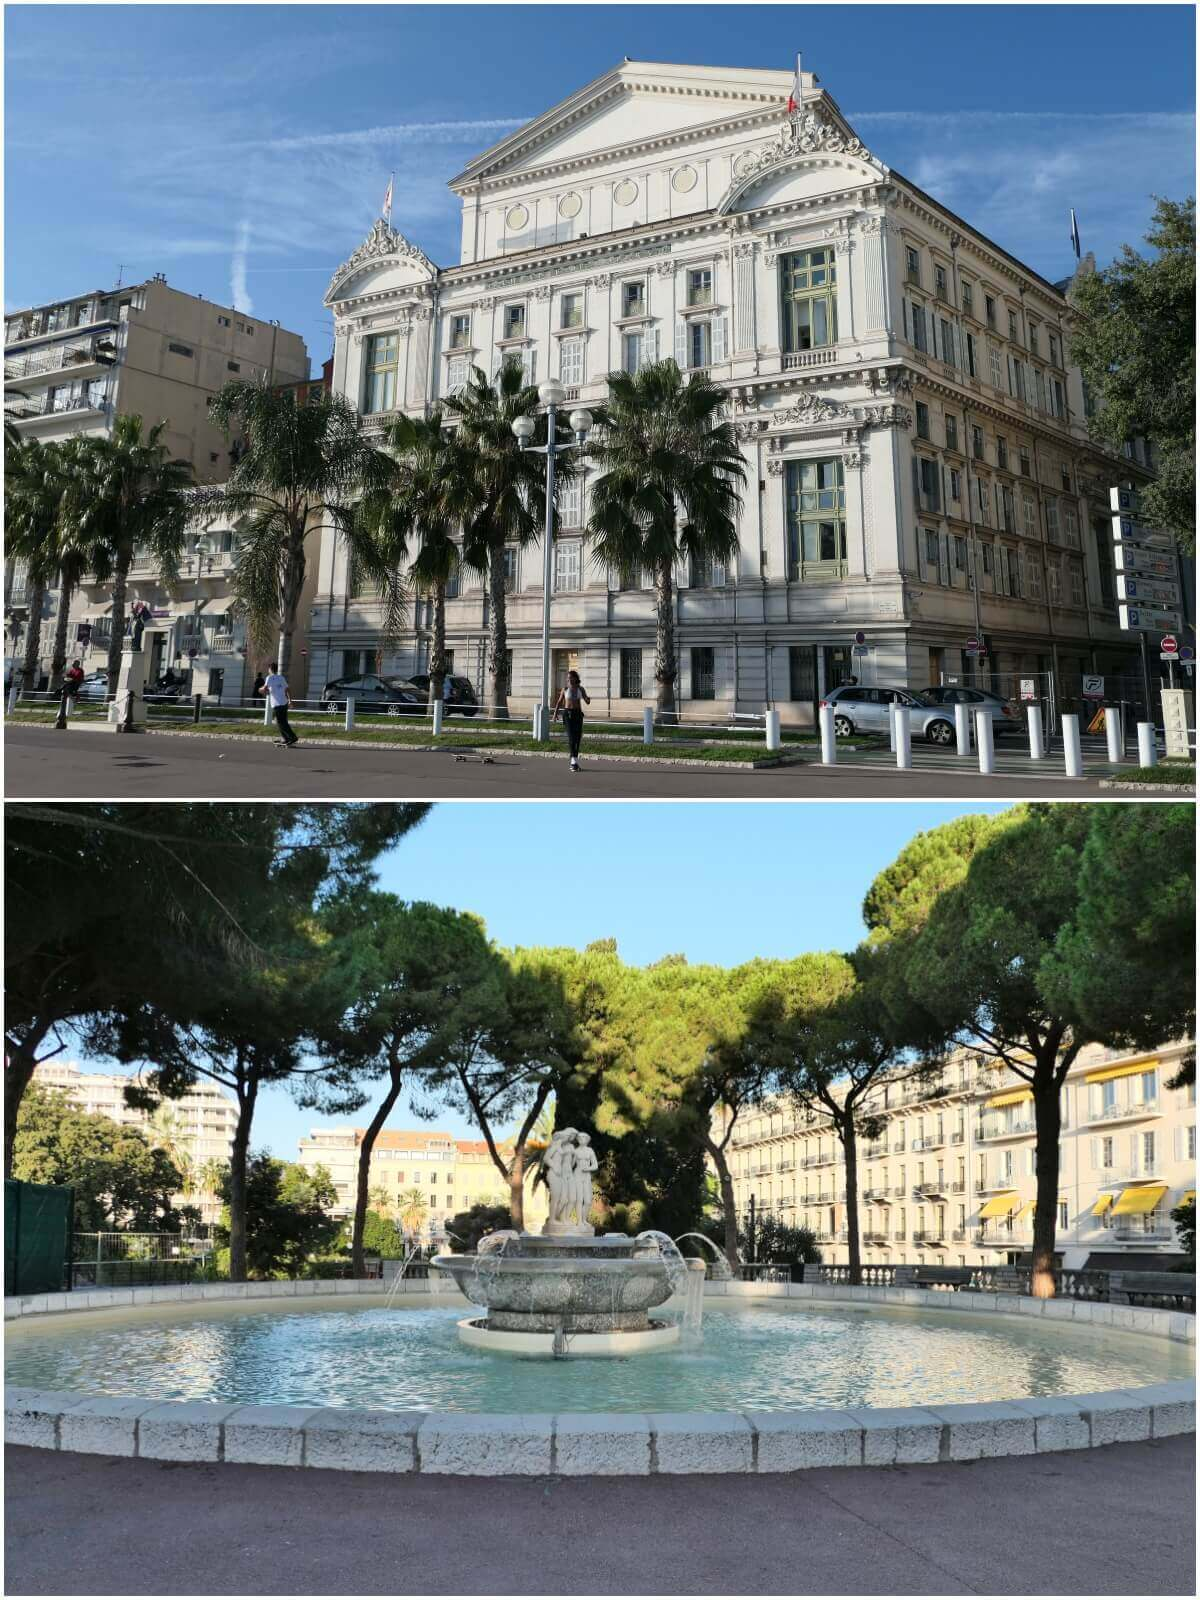 Tourist Attraction in Nice, France